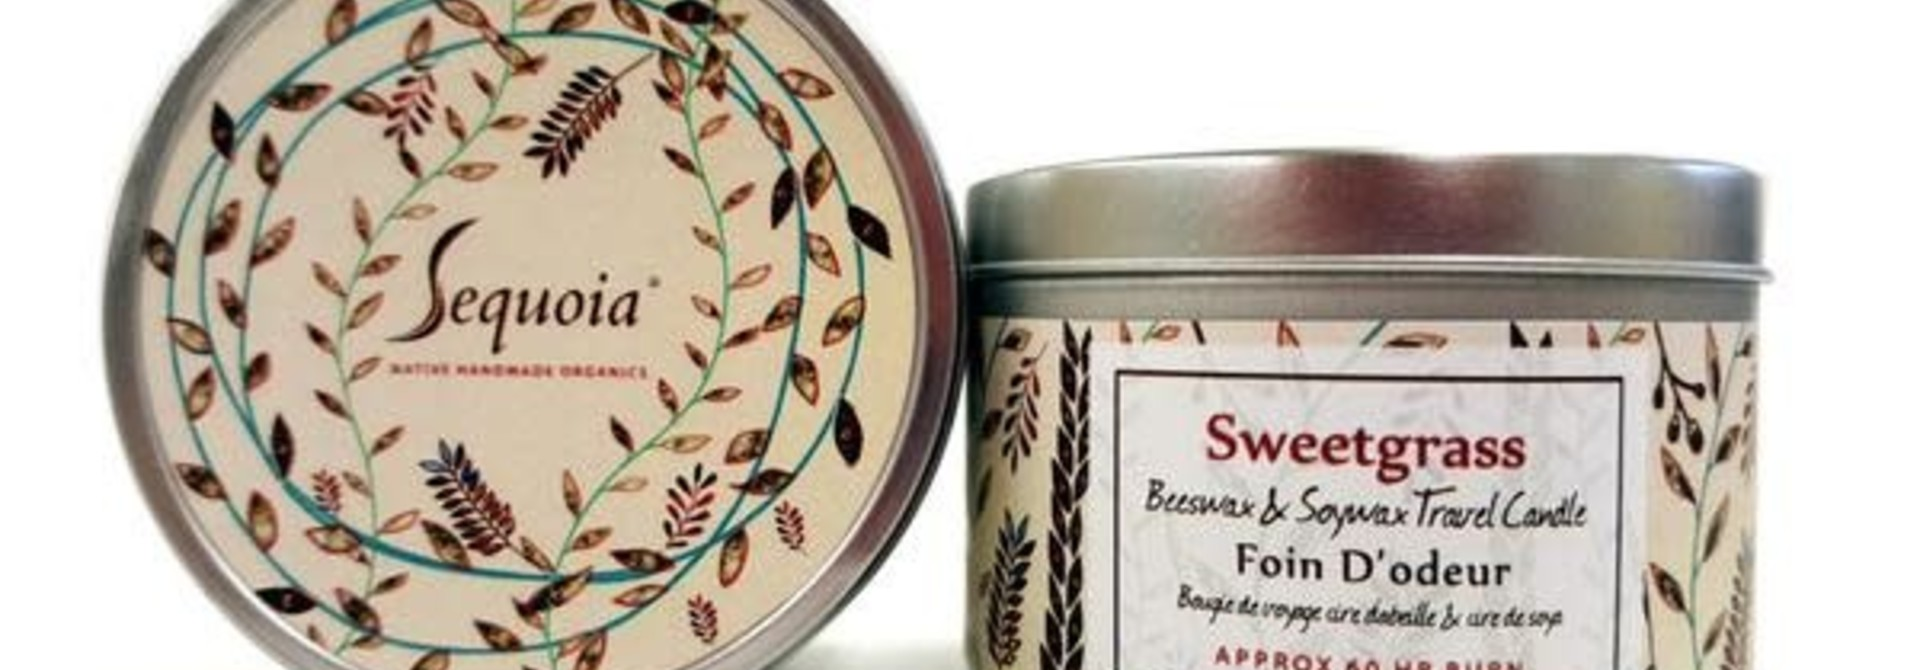 Sequoia 60 Hour Candle - Sweetgrass